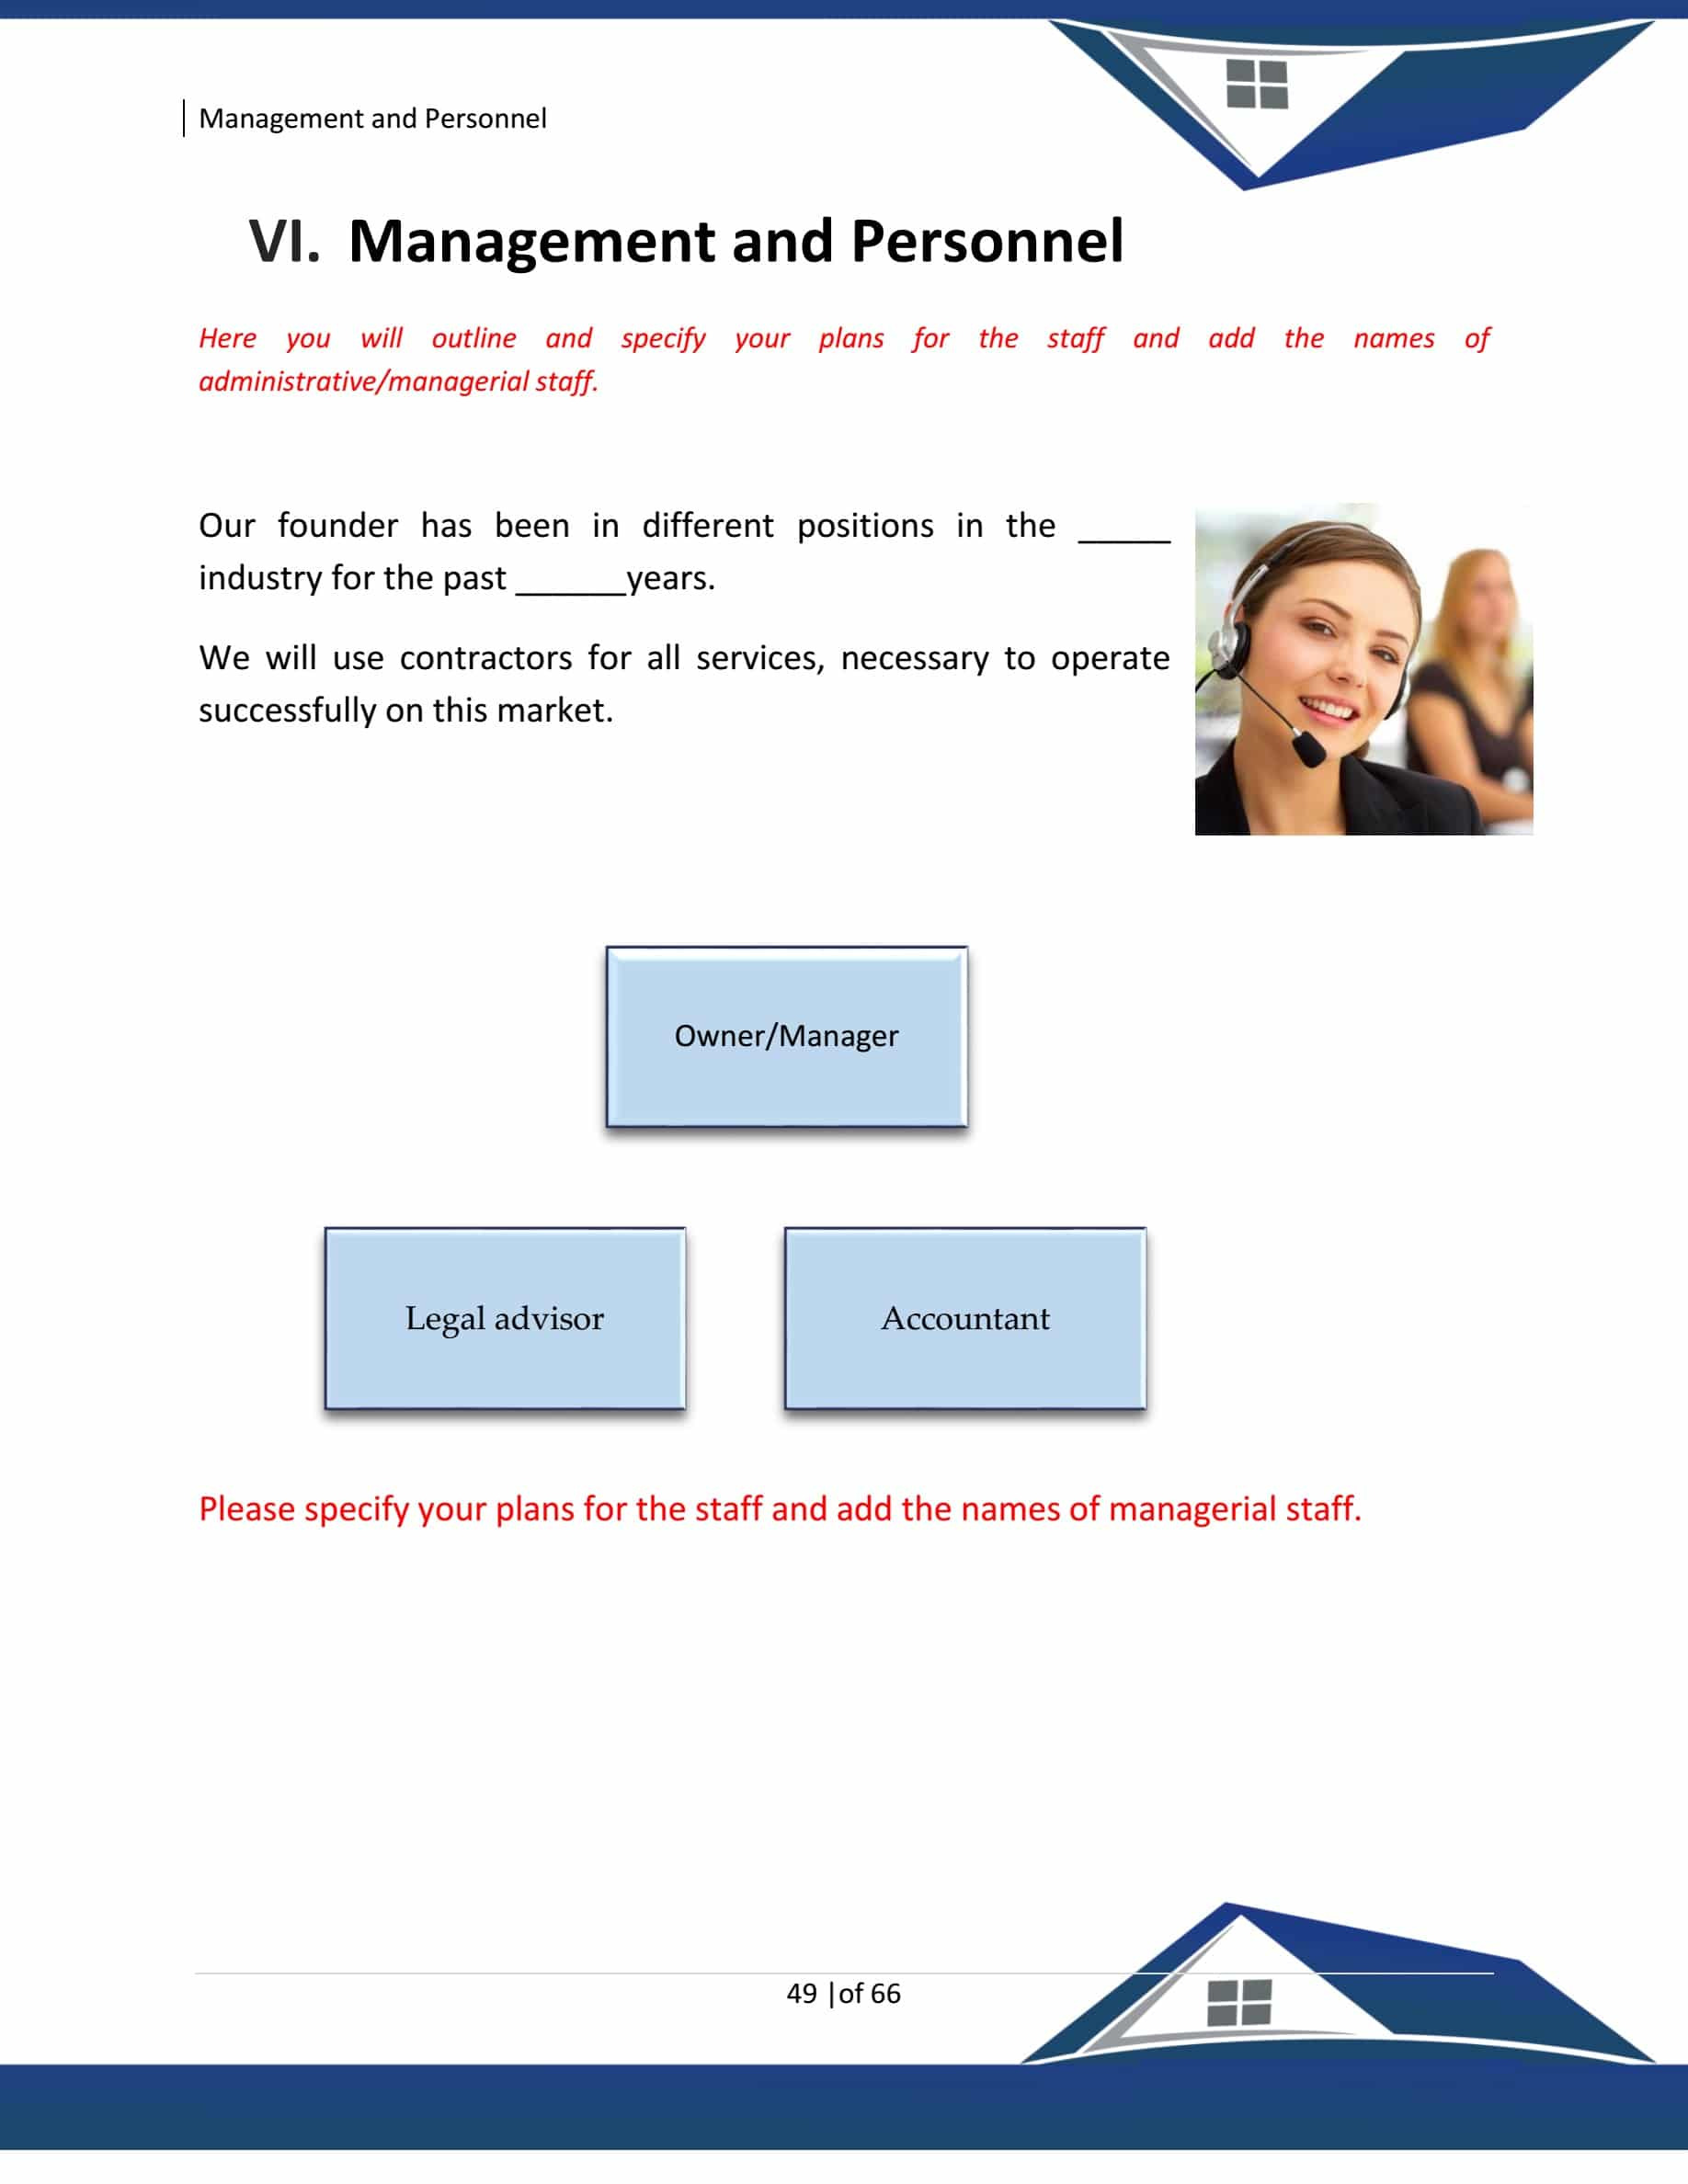 House Flipping Business Plan Best Of Real Estate House Flipping Business Plan Template Sample